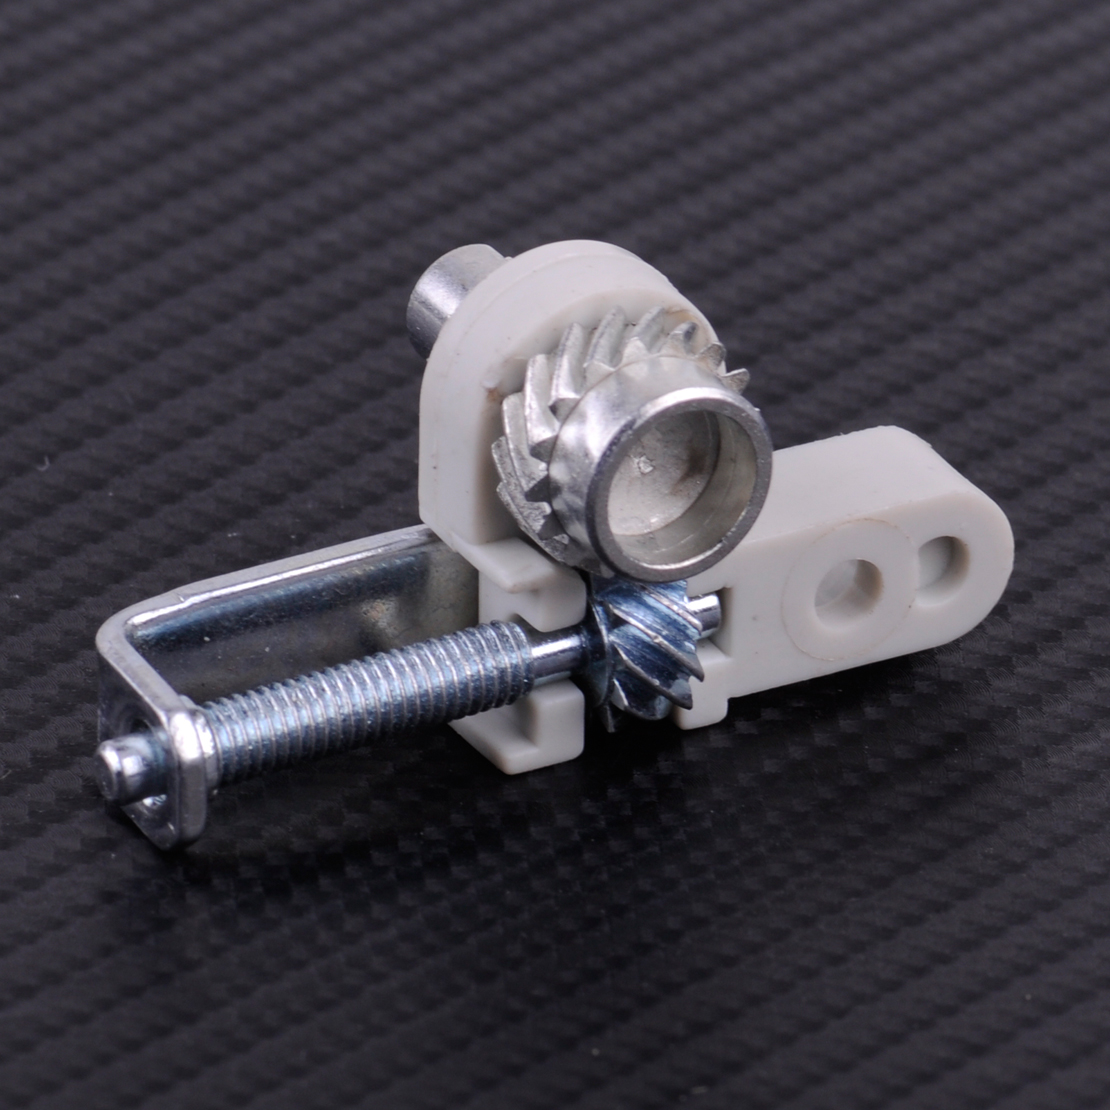 LETAOSK New Chainsaw Chain Adjuster Tensioner Adjustment Screw Fit For Stihl 021 023 025 MS210 MS230 MS250 Chainsaw